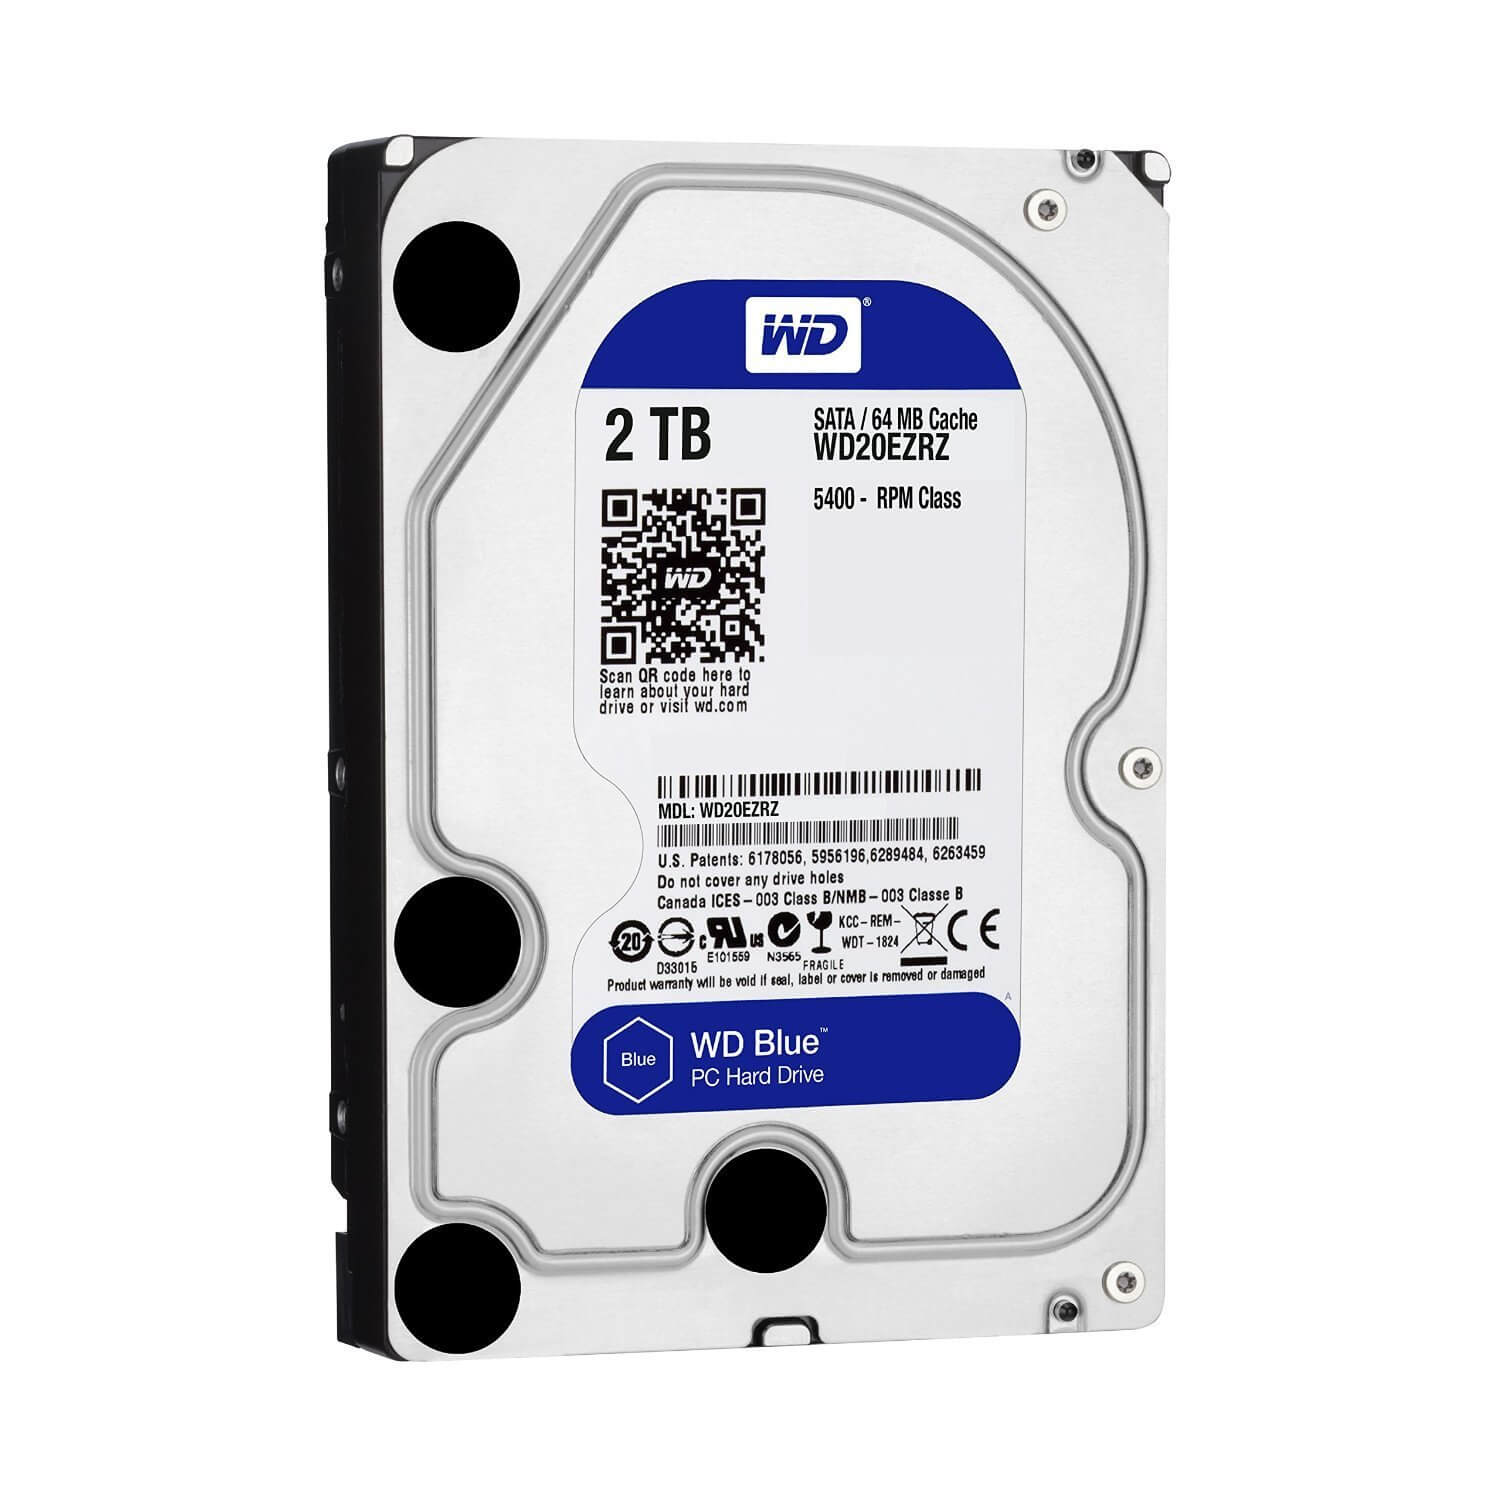 WD Blue 2TB HDD For Gaming